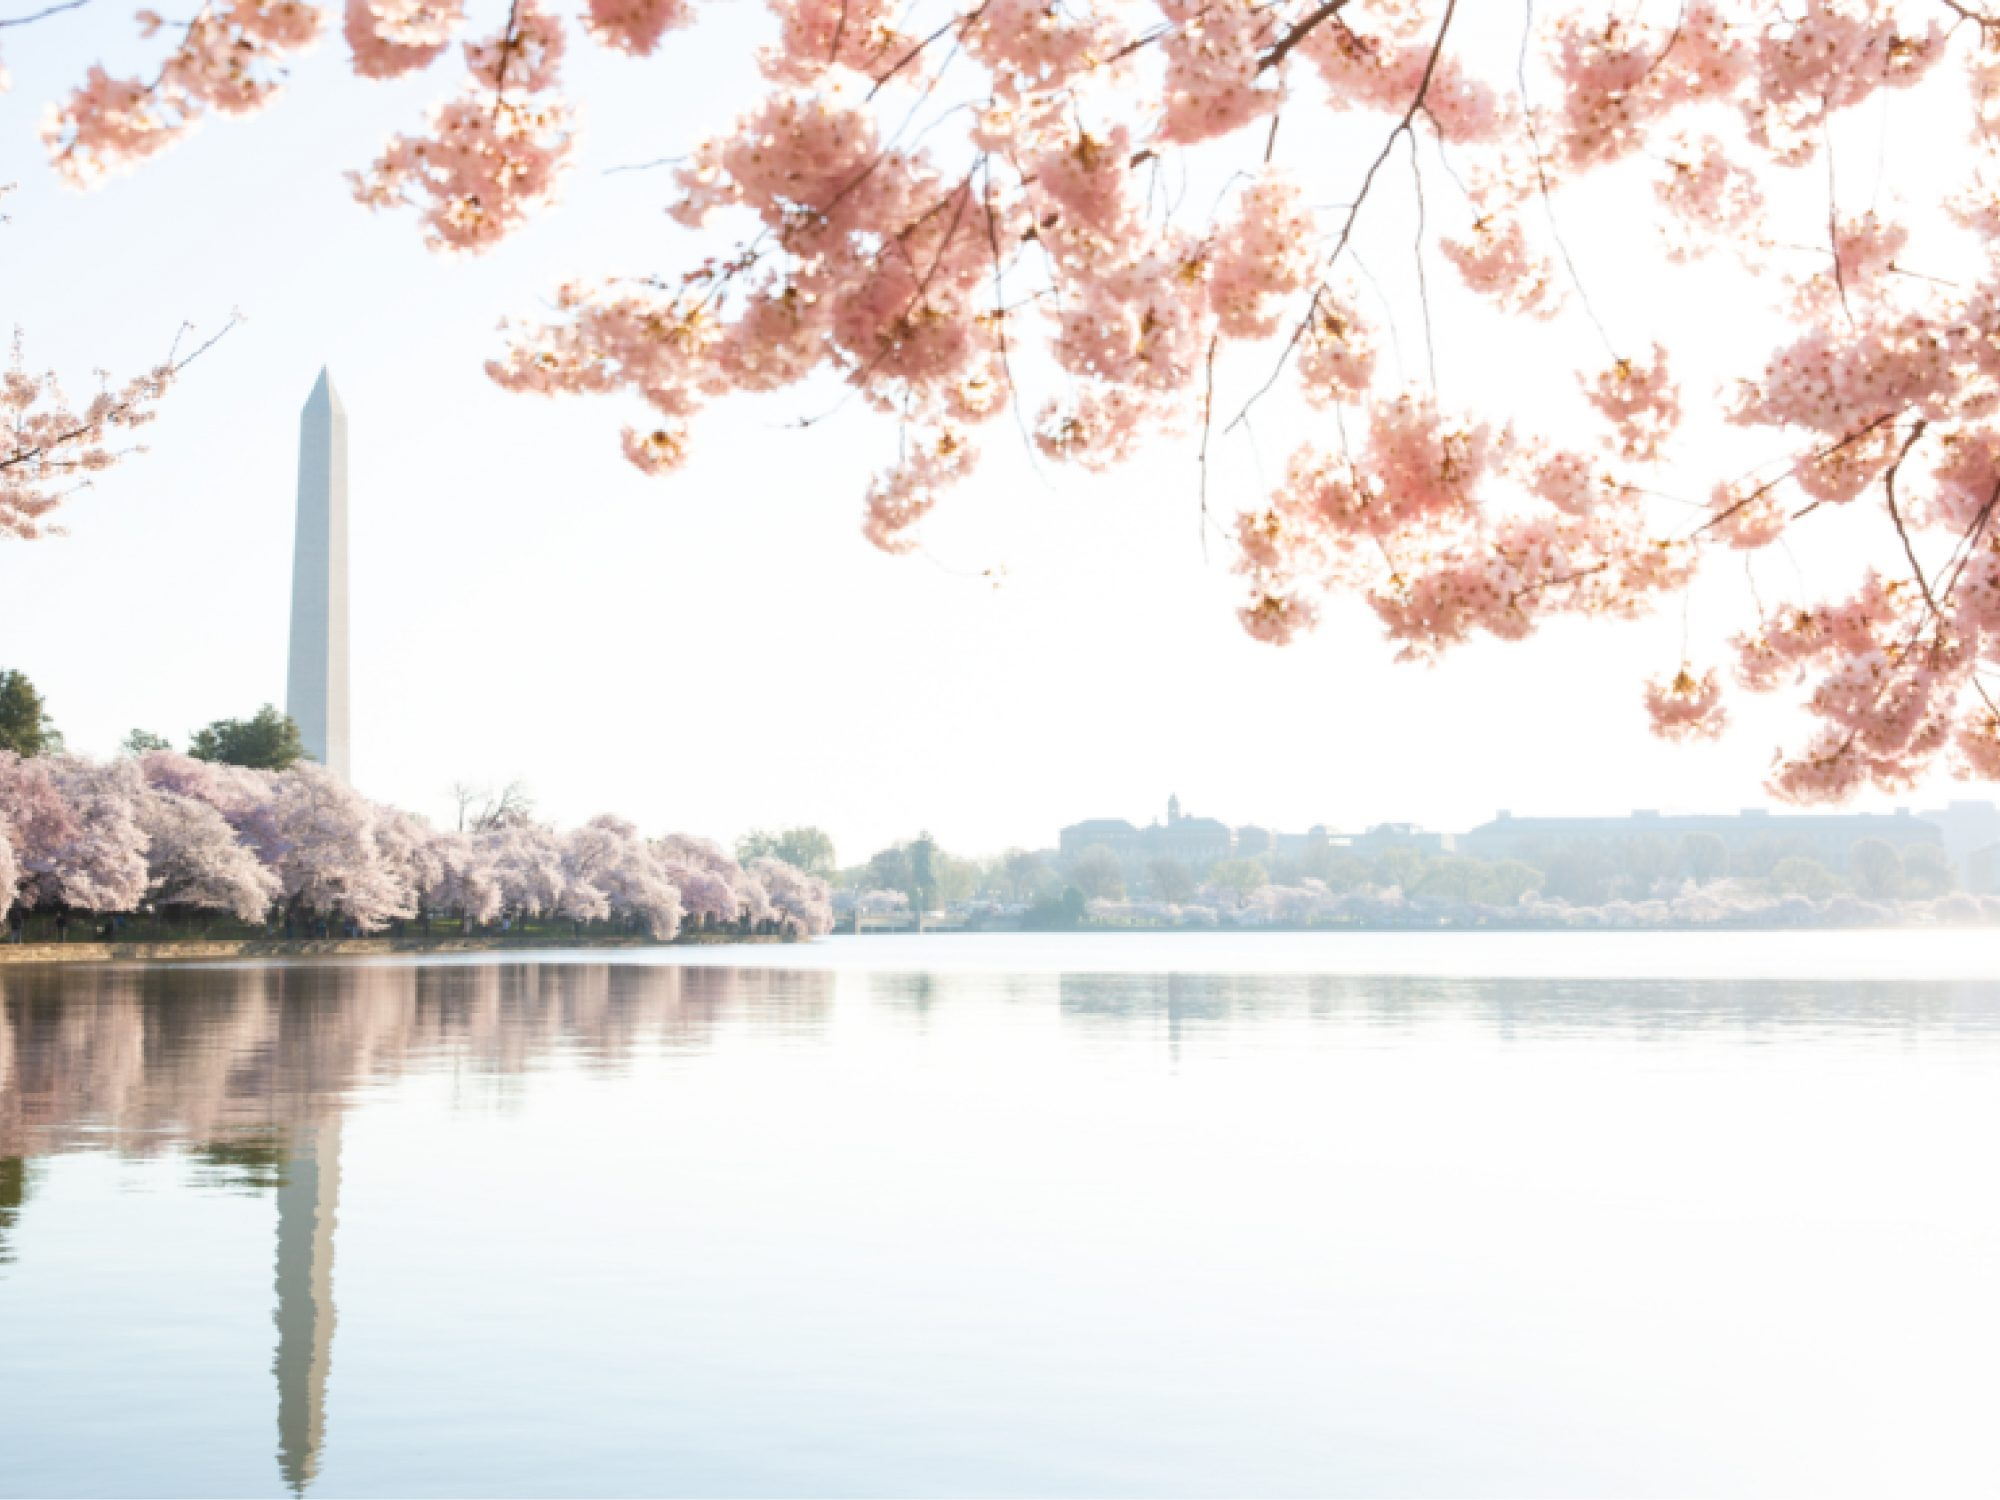 Photo of the Washington Monument taken during the cherry blossom festival